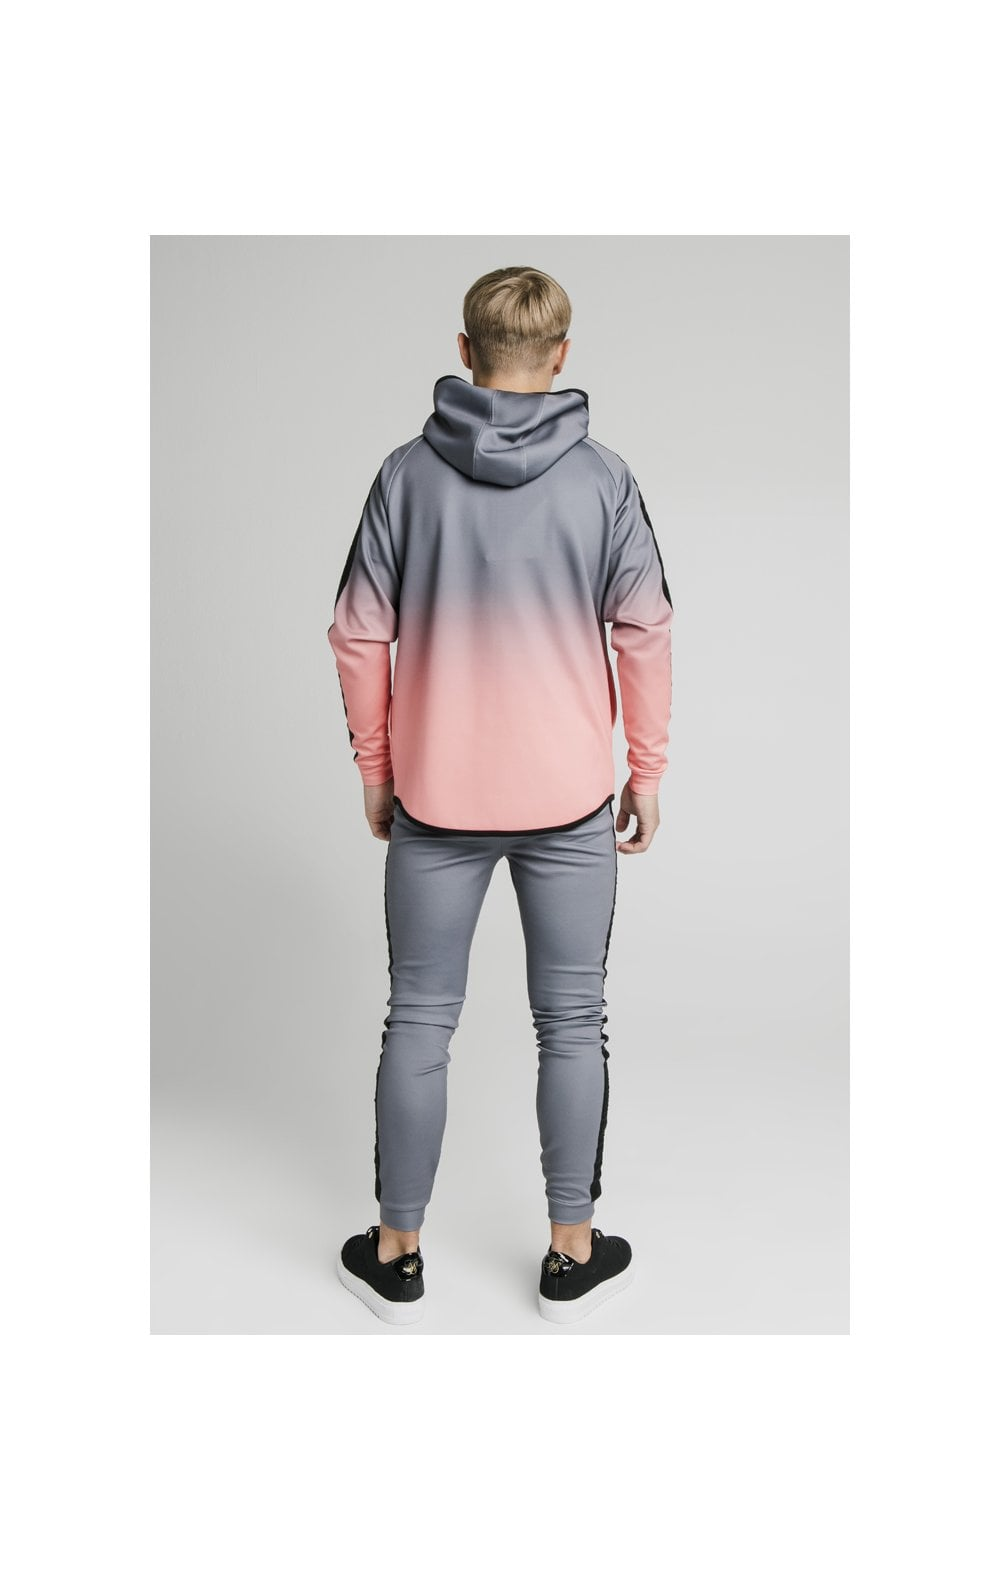 Illusive London Athlete Zip Through Fade Hoodie - Grey & Peach (5)